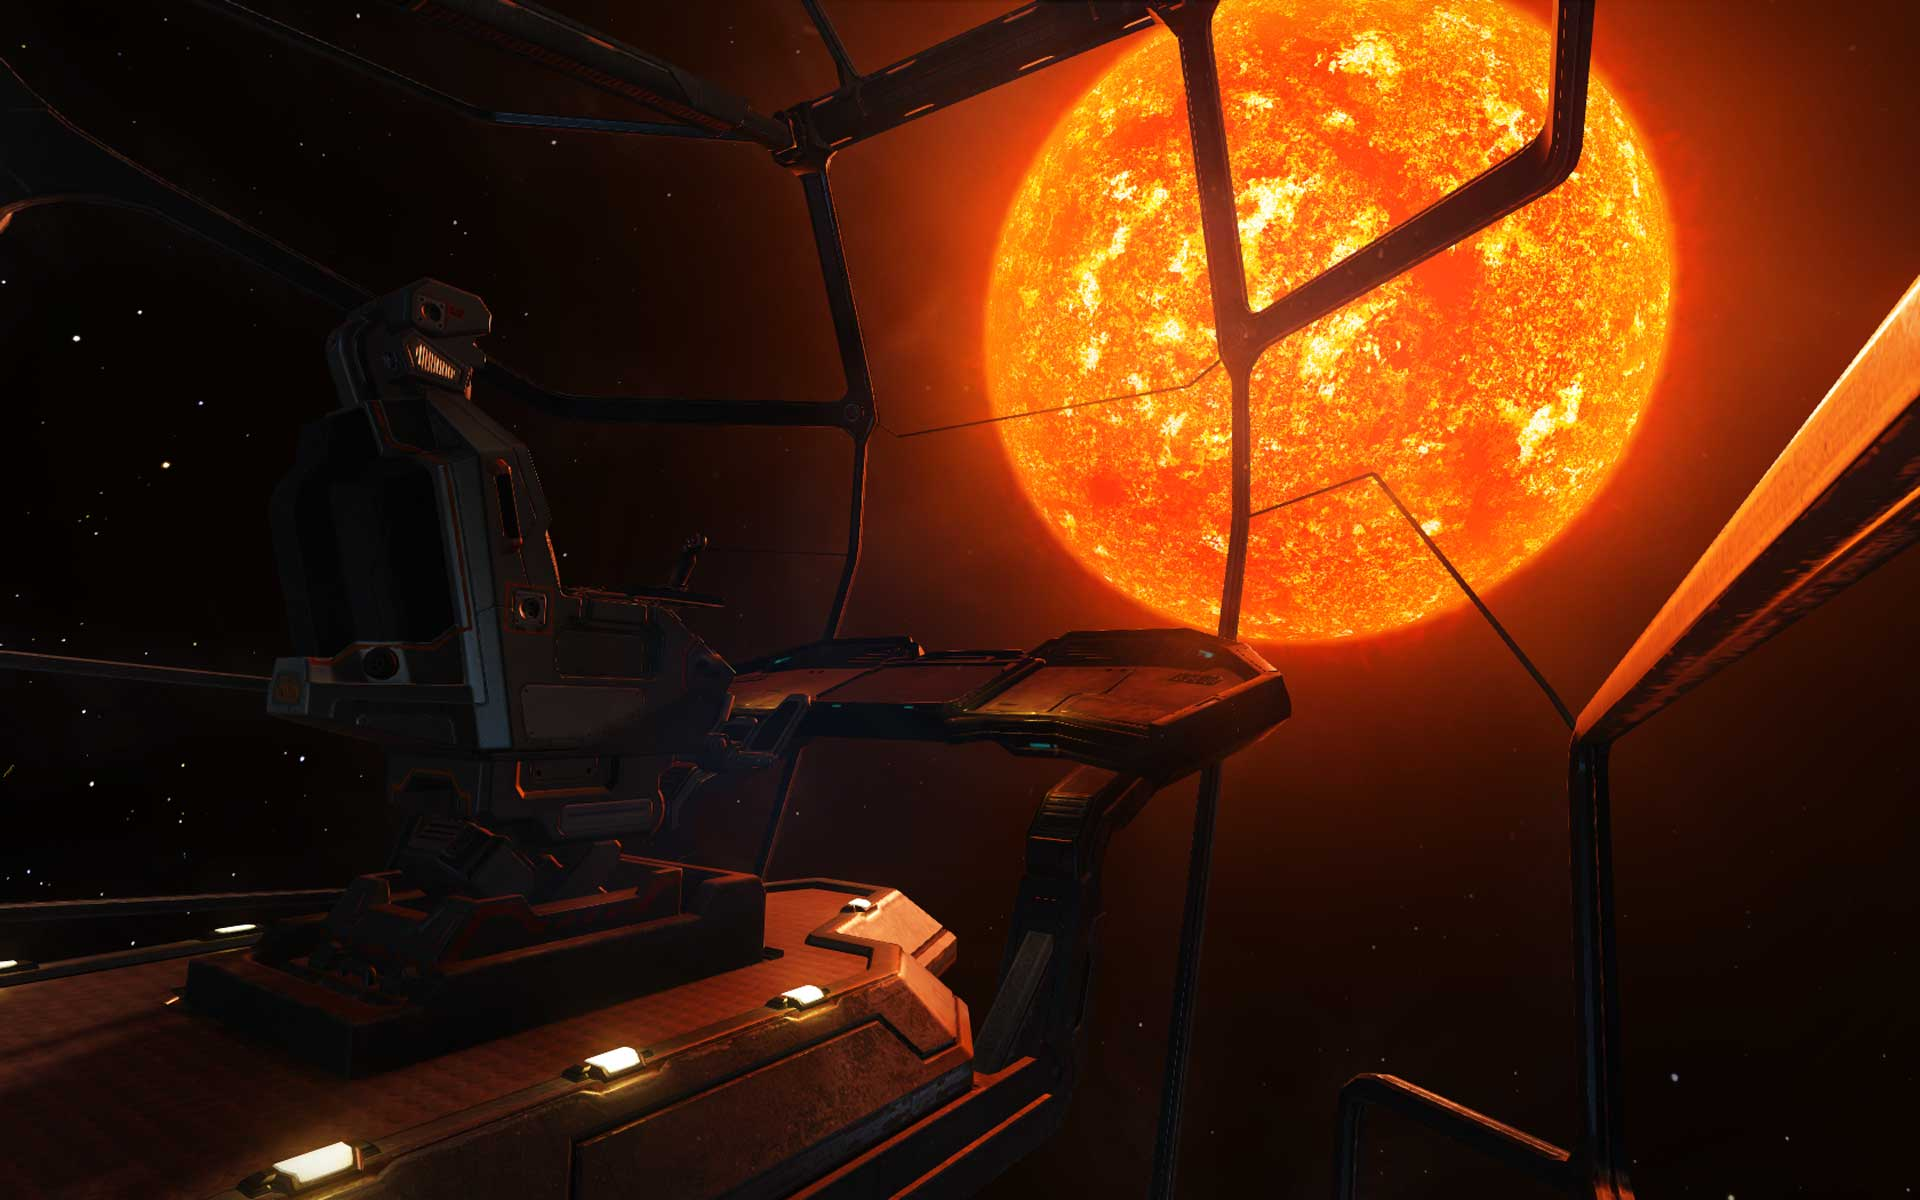 Elite: Dangerous explores the limitless depths of space, and of human cruelty (correction)